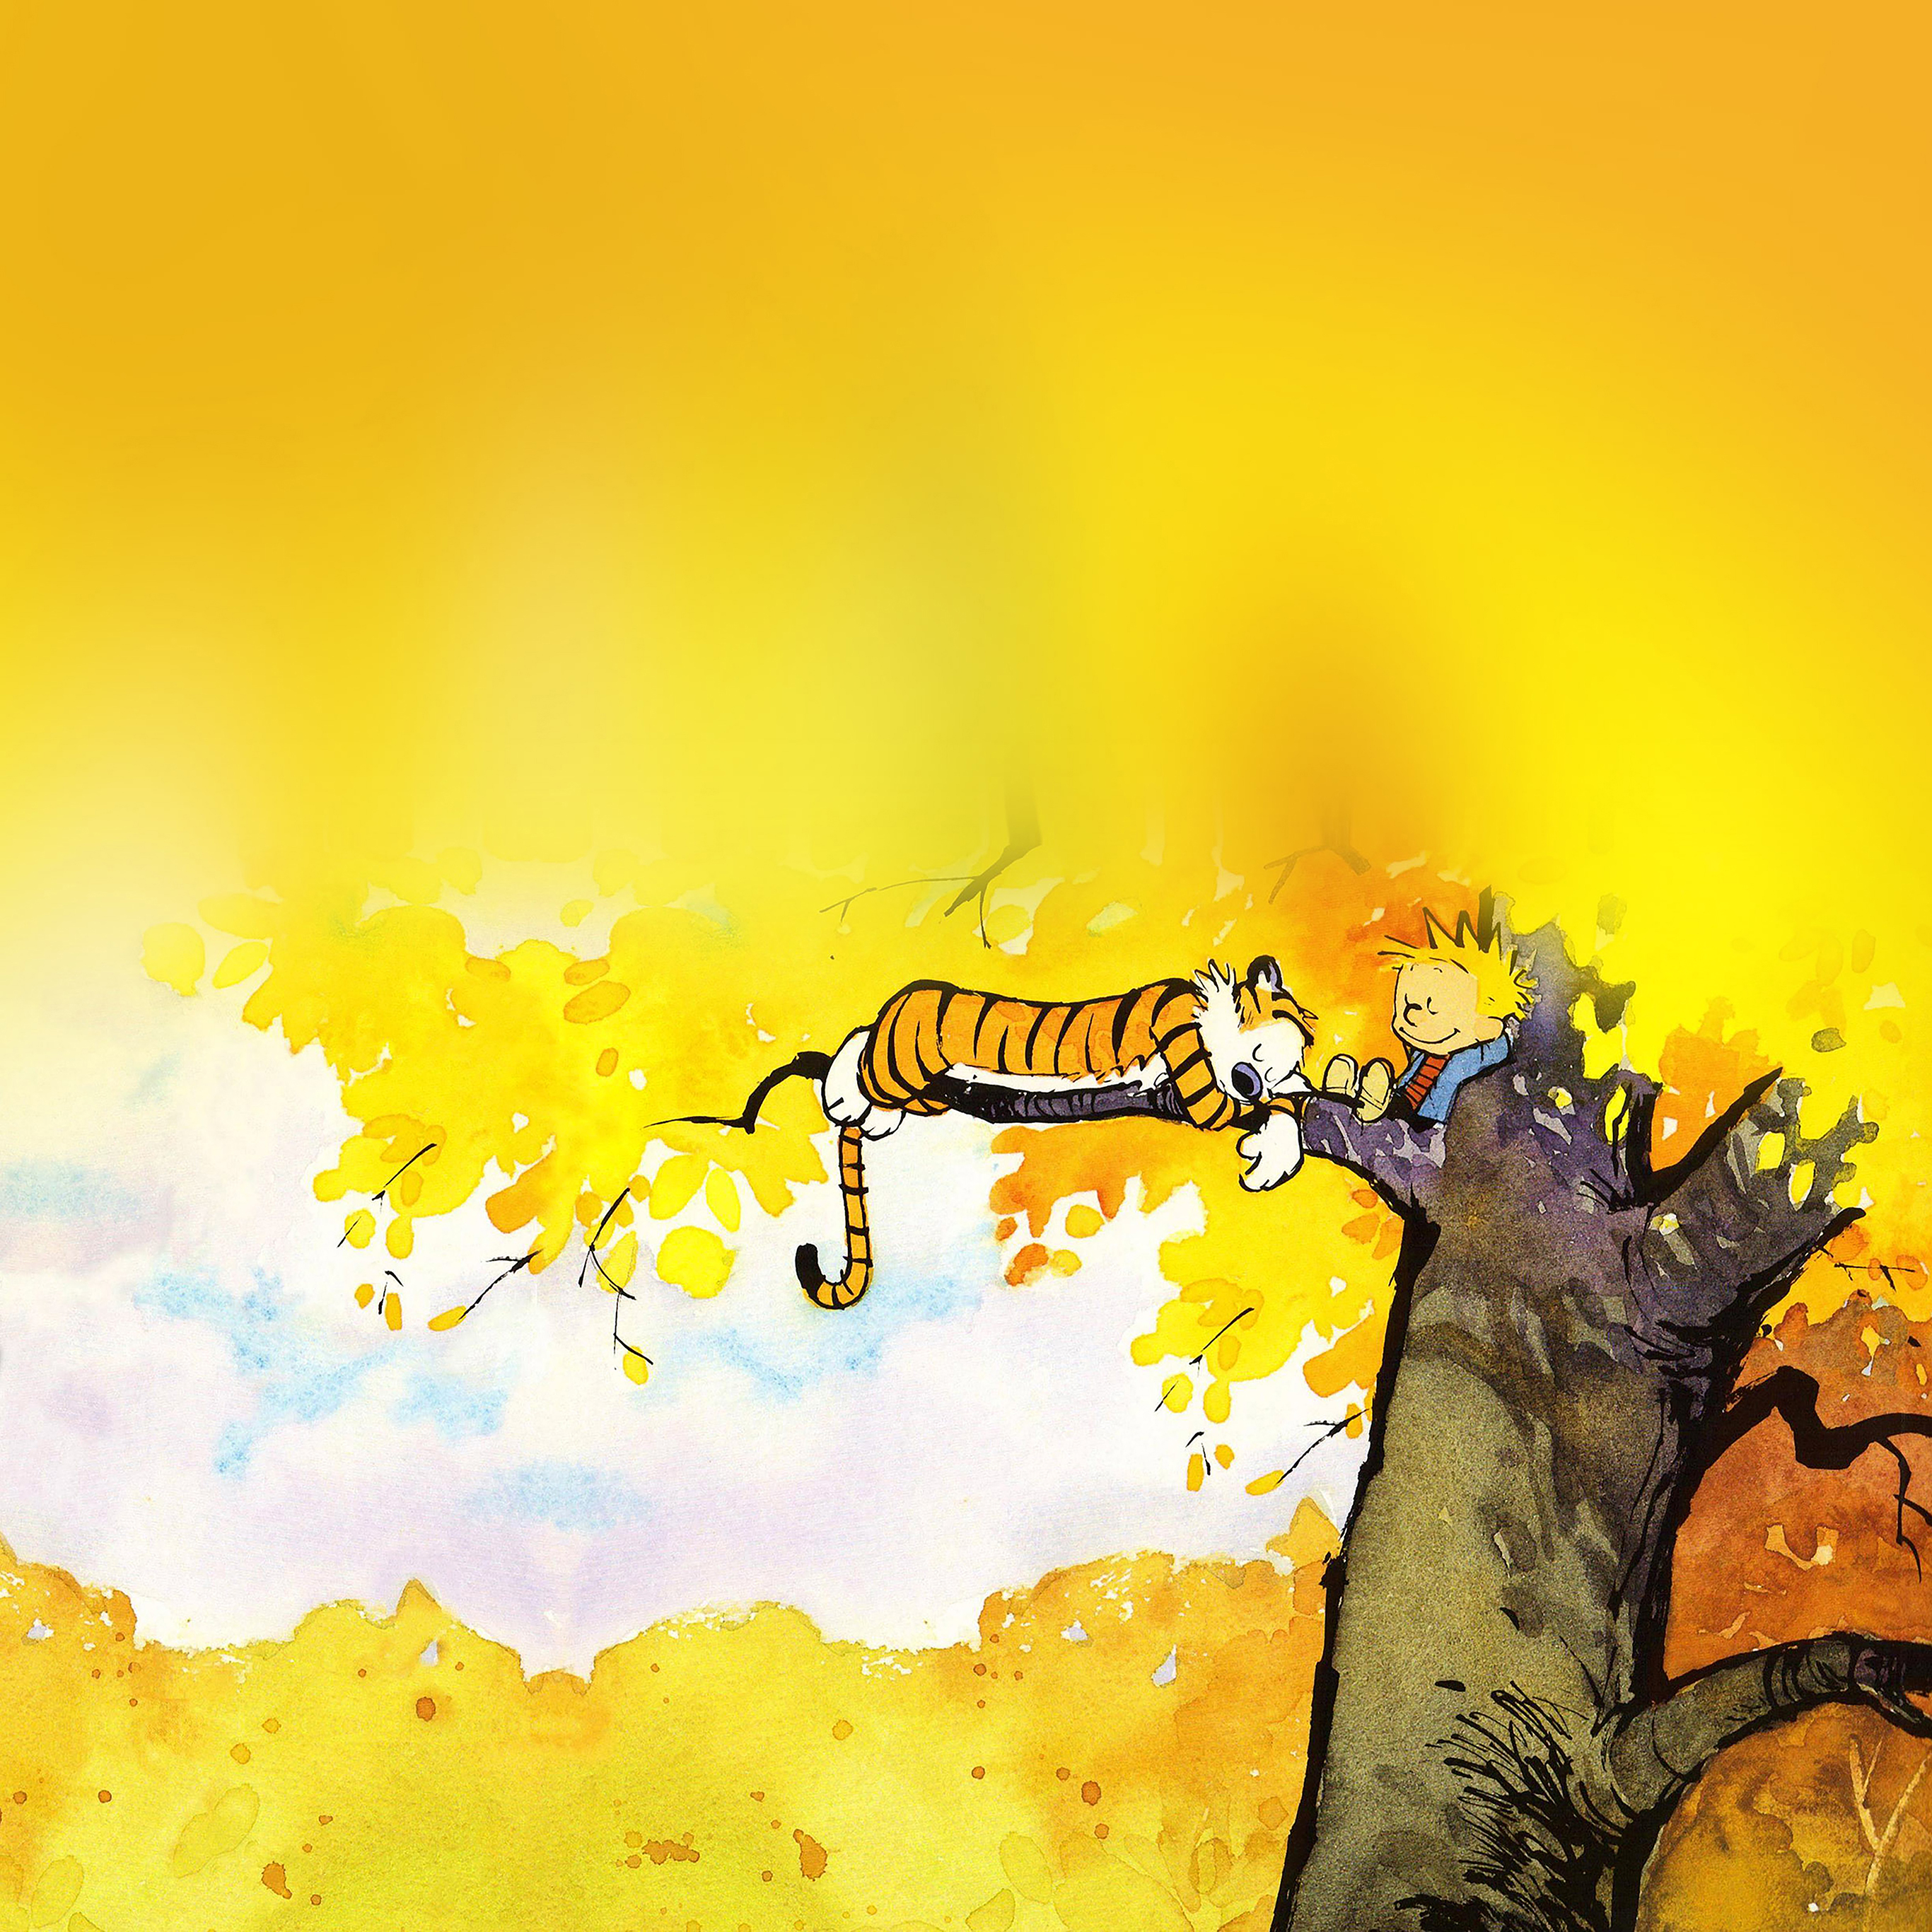 Ab20 Wallpaper Calvin And Hobbes Nap Illust Papers Co